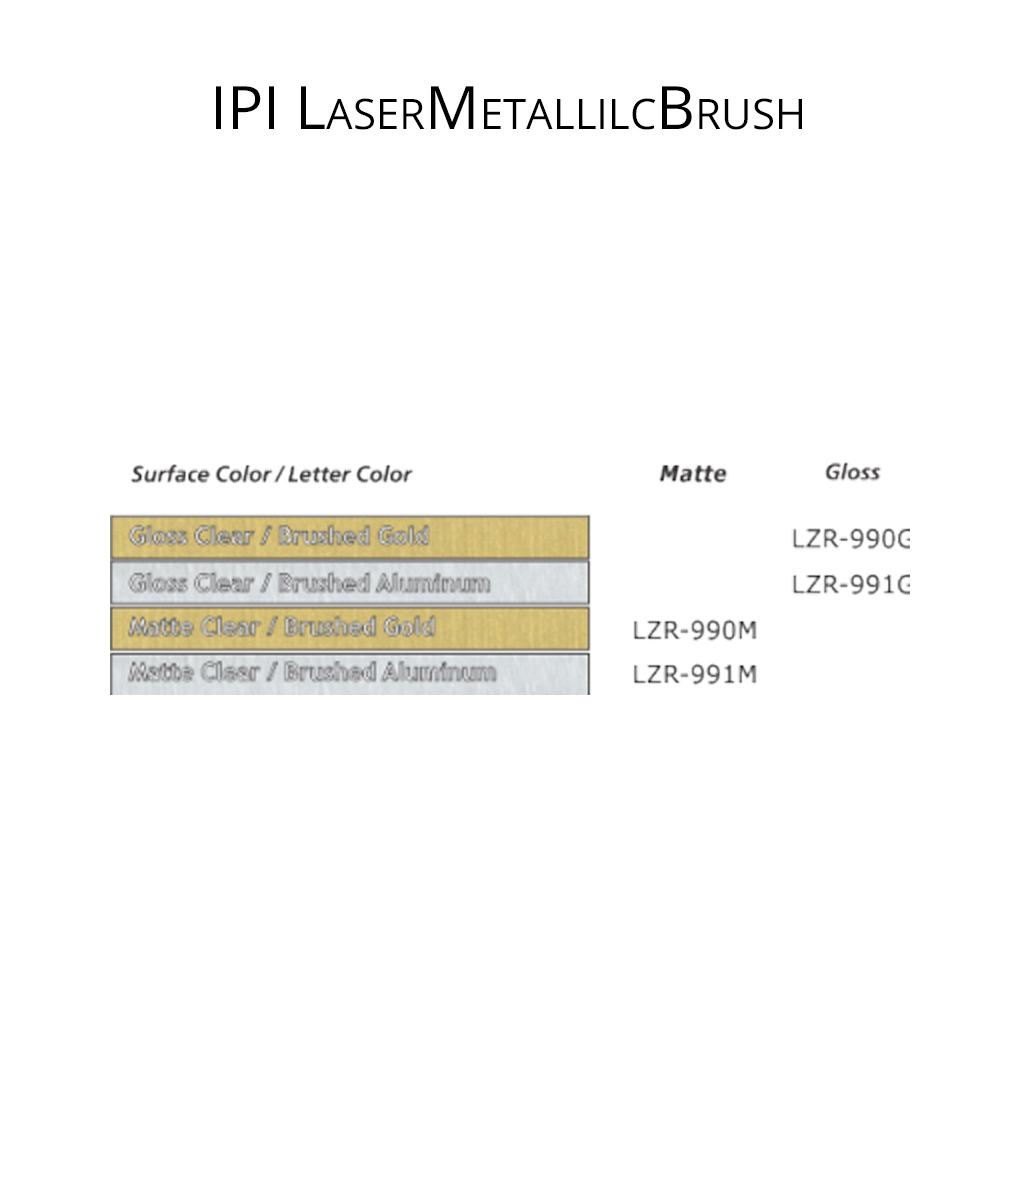 IPI LaserMetallicBrush - engraving material color options from Main Trophy Supply